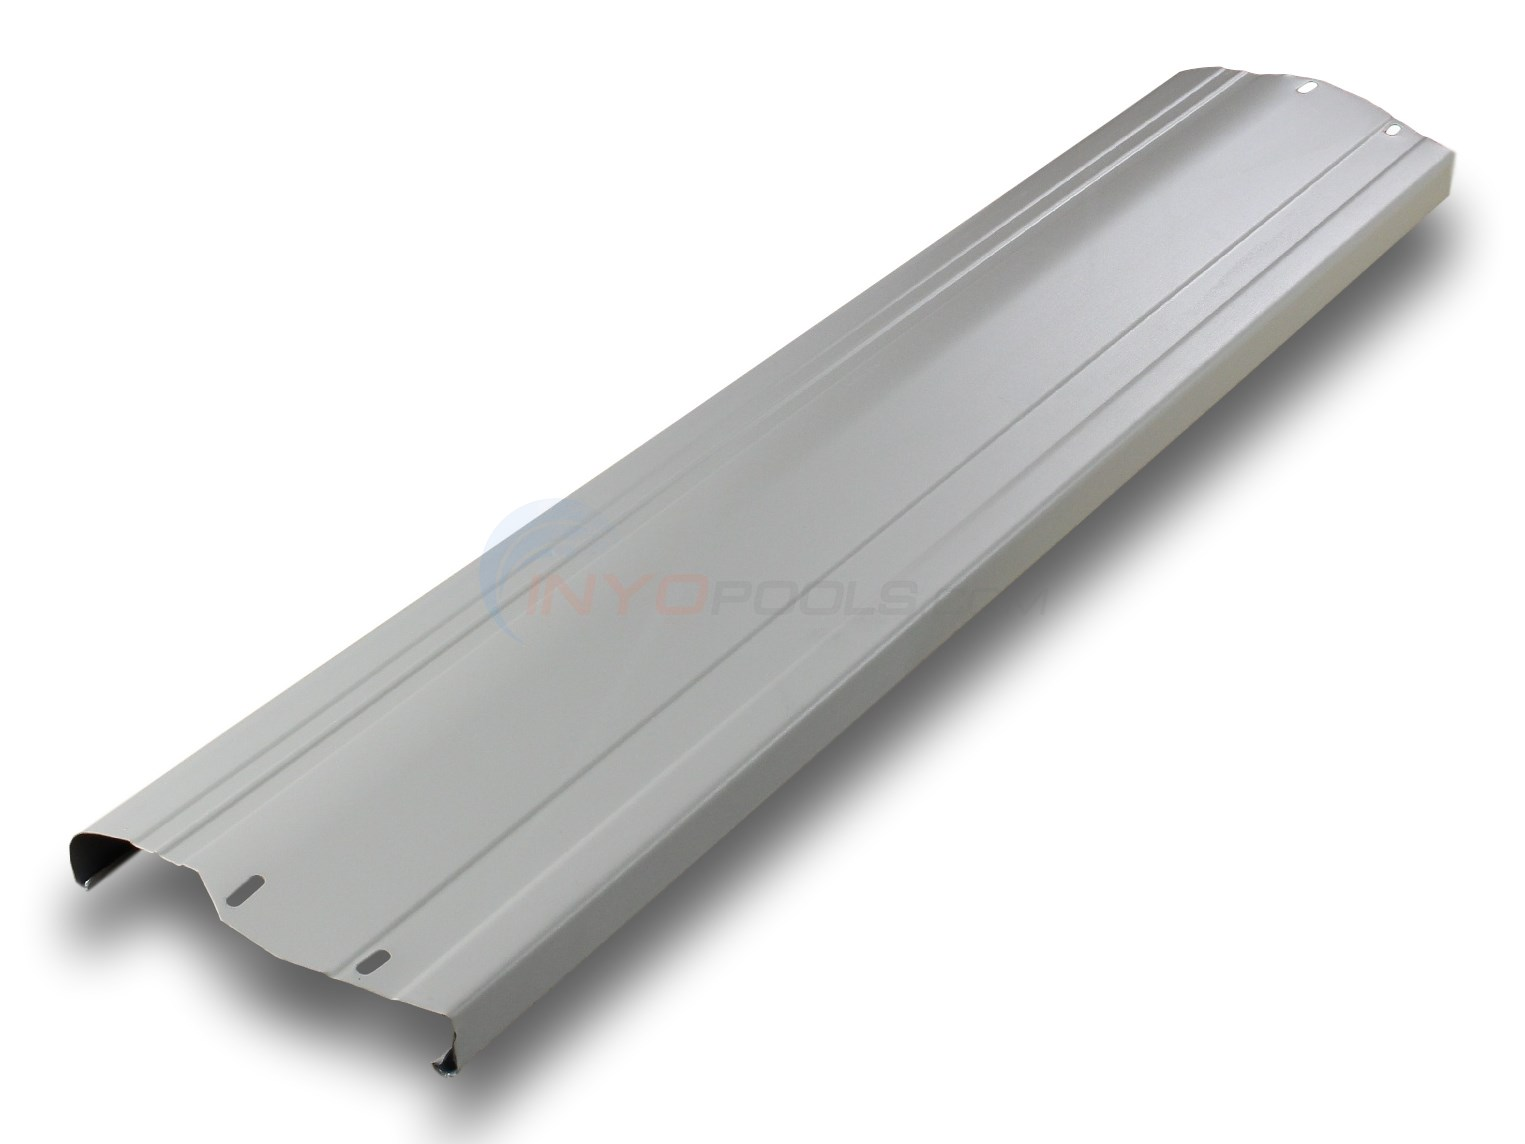 "Top Rail Crv Side Steel 51 5/32"" (Single)"